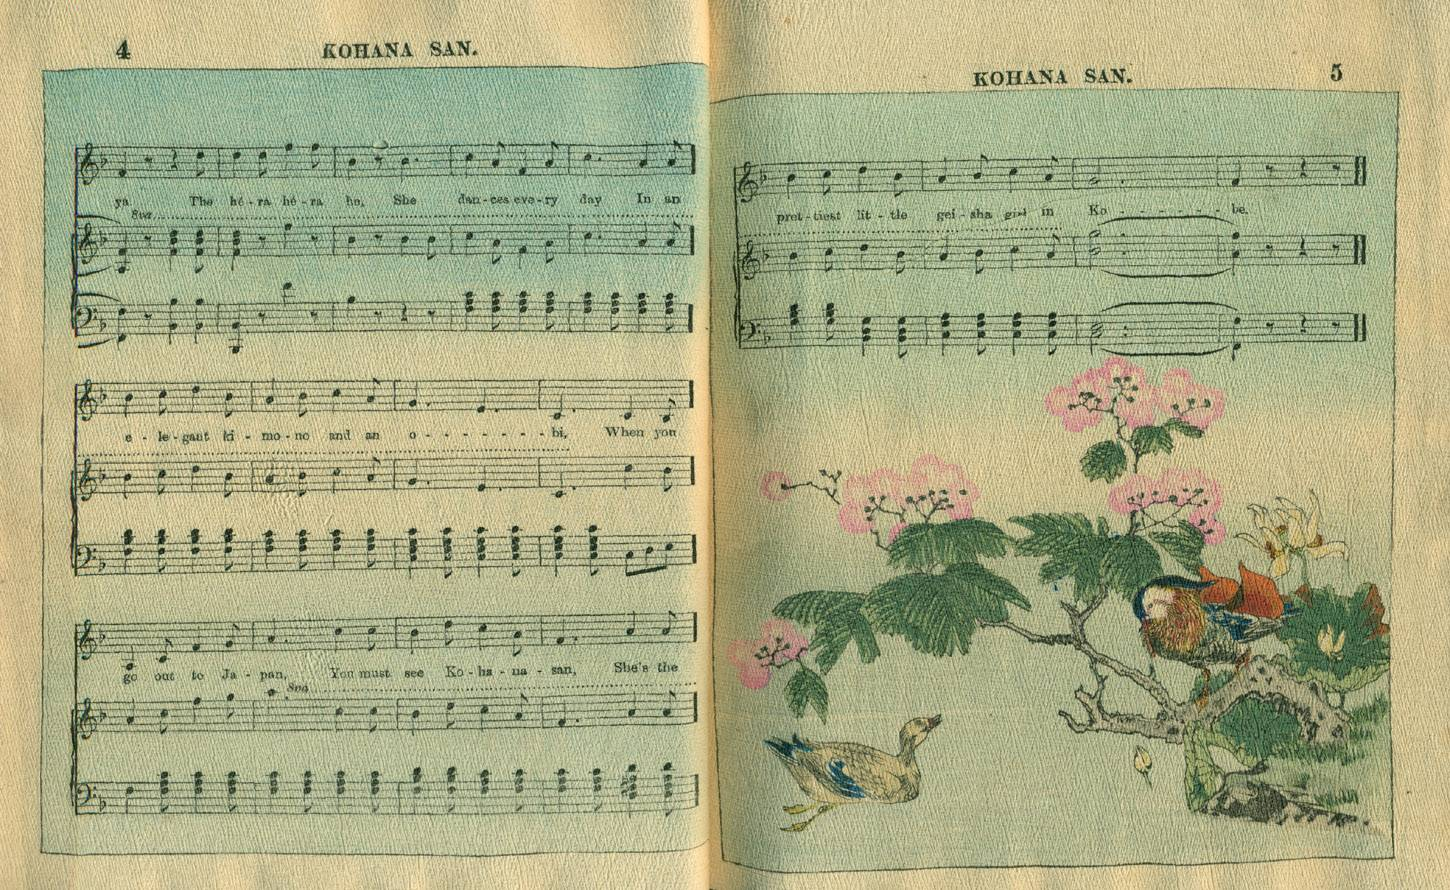 Pages 4 and 5